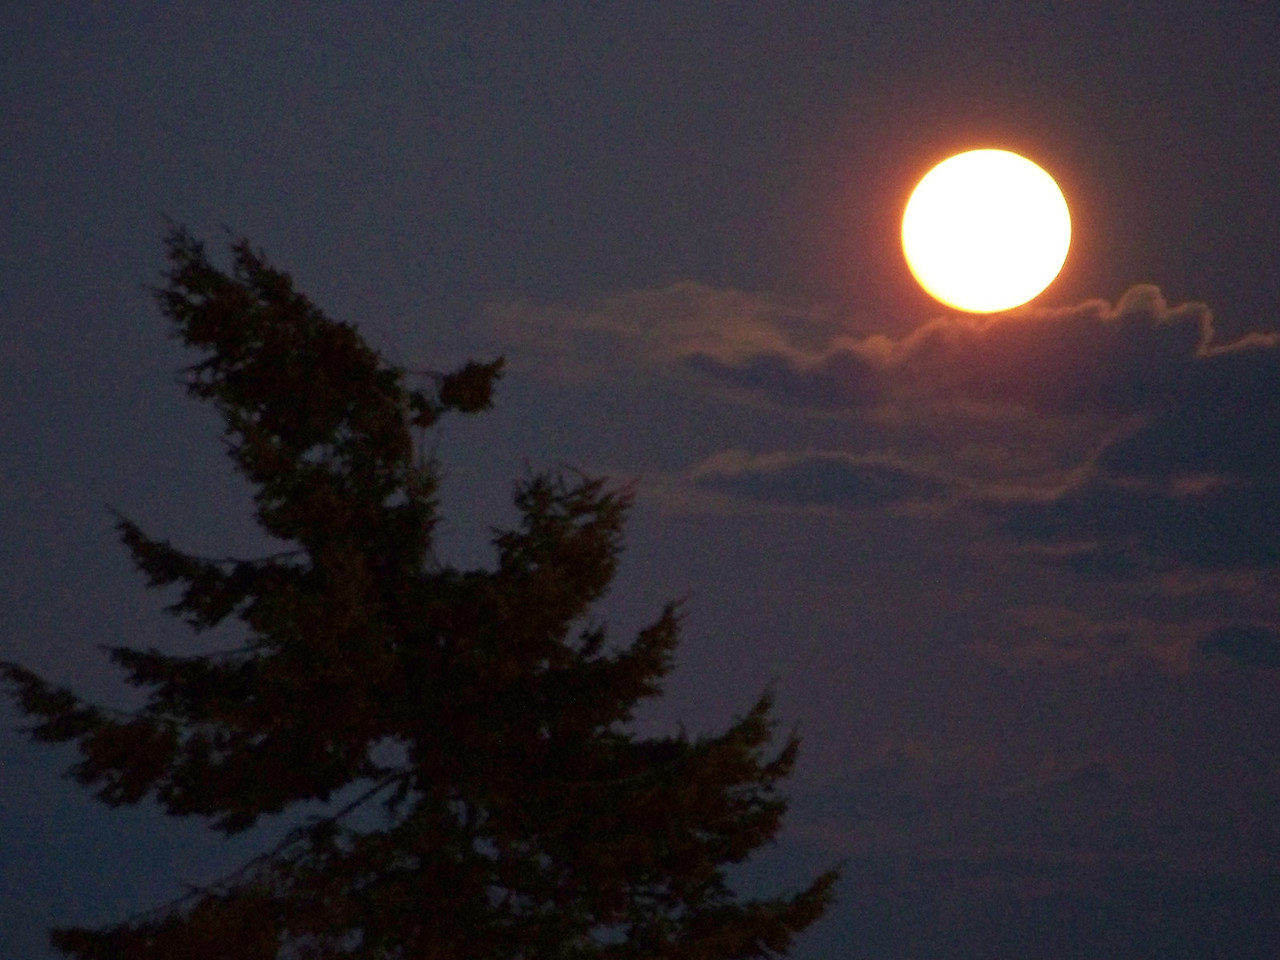 """The """"supermoon"""" of May 5th, 2012, as photographed from my balcony in Ballard.  This is the cropped version."""